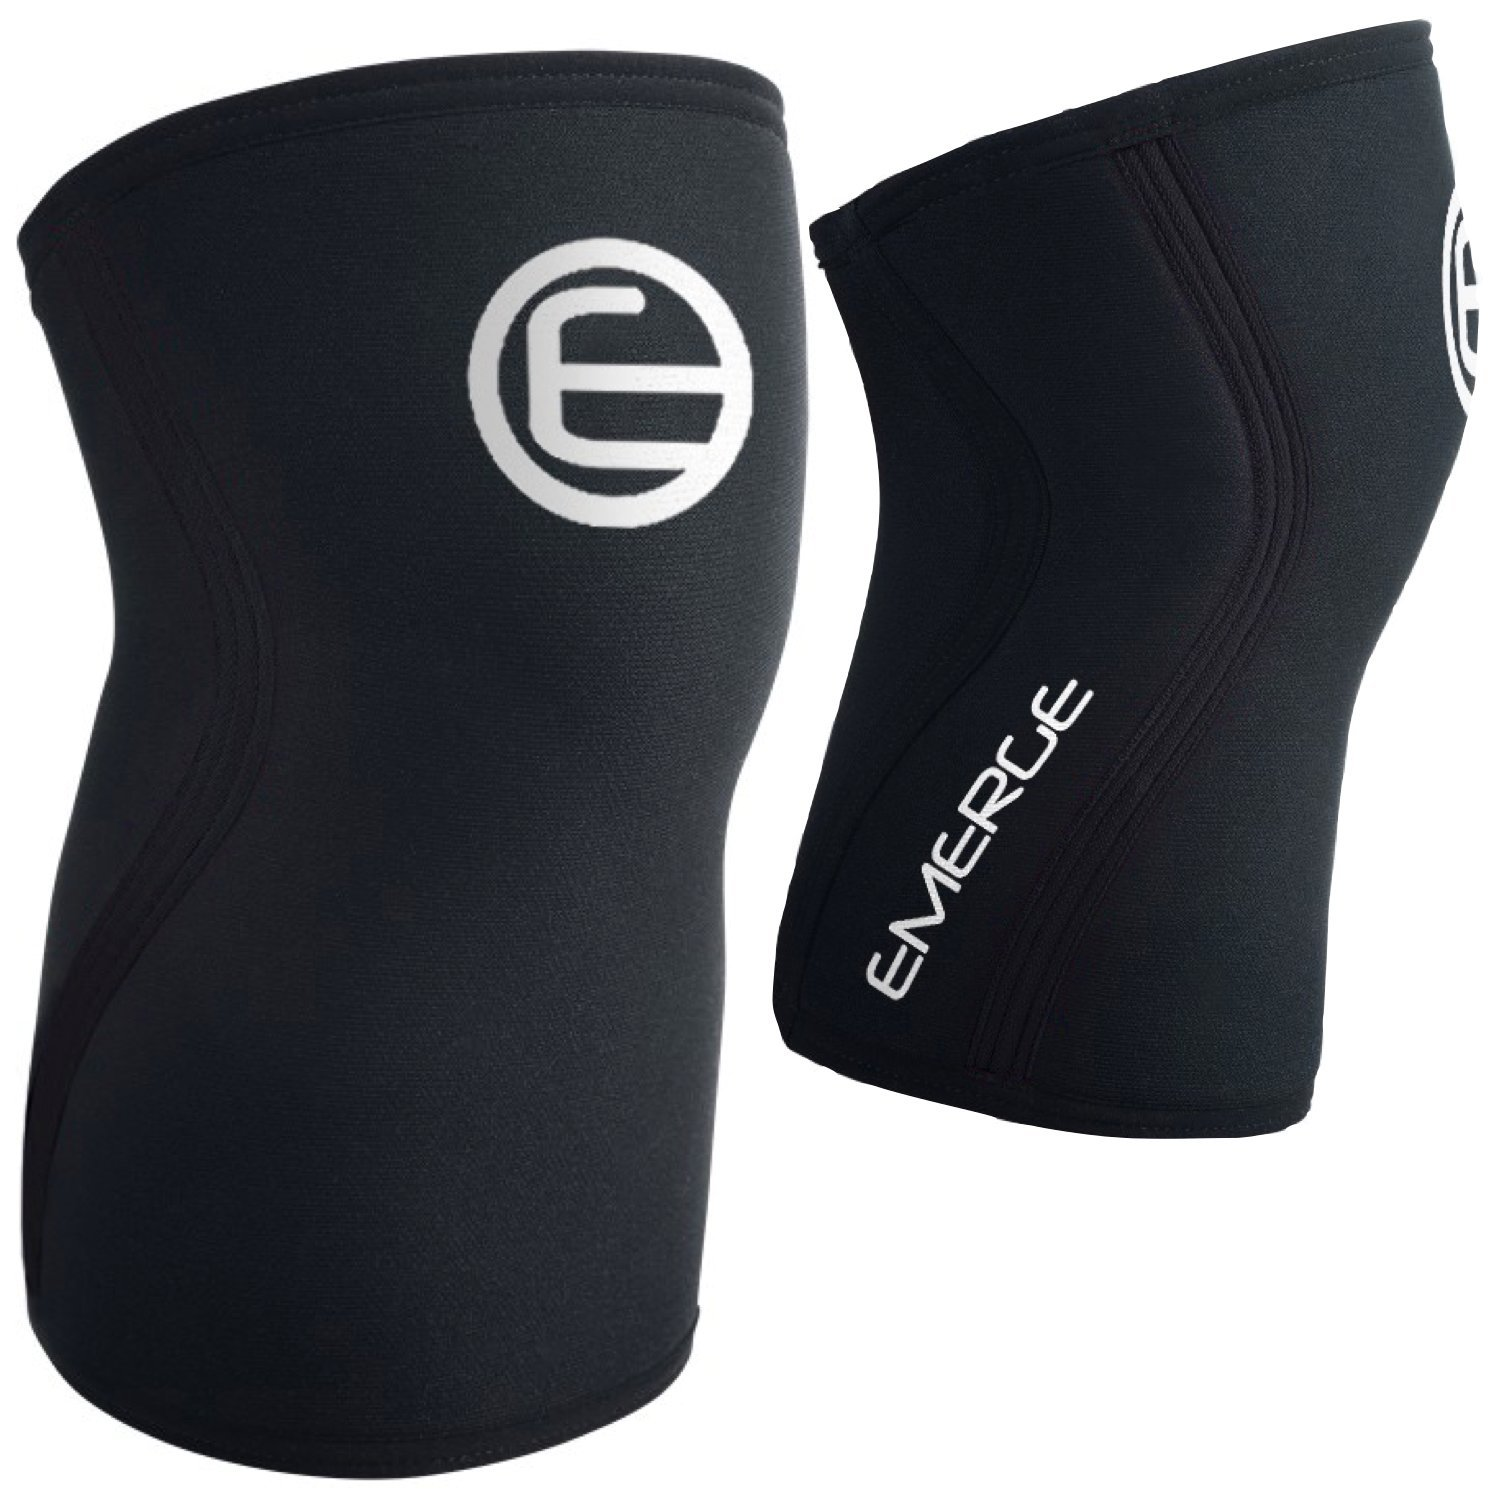 Emerge 7mm Sleeve